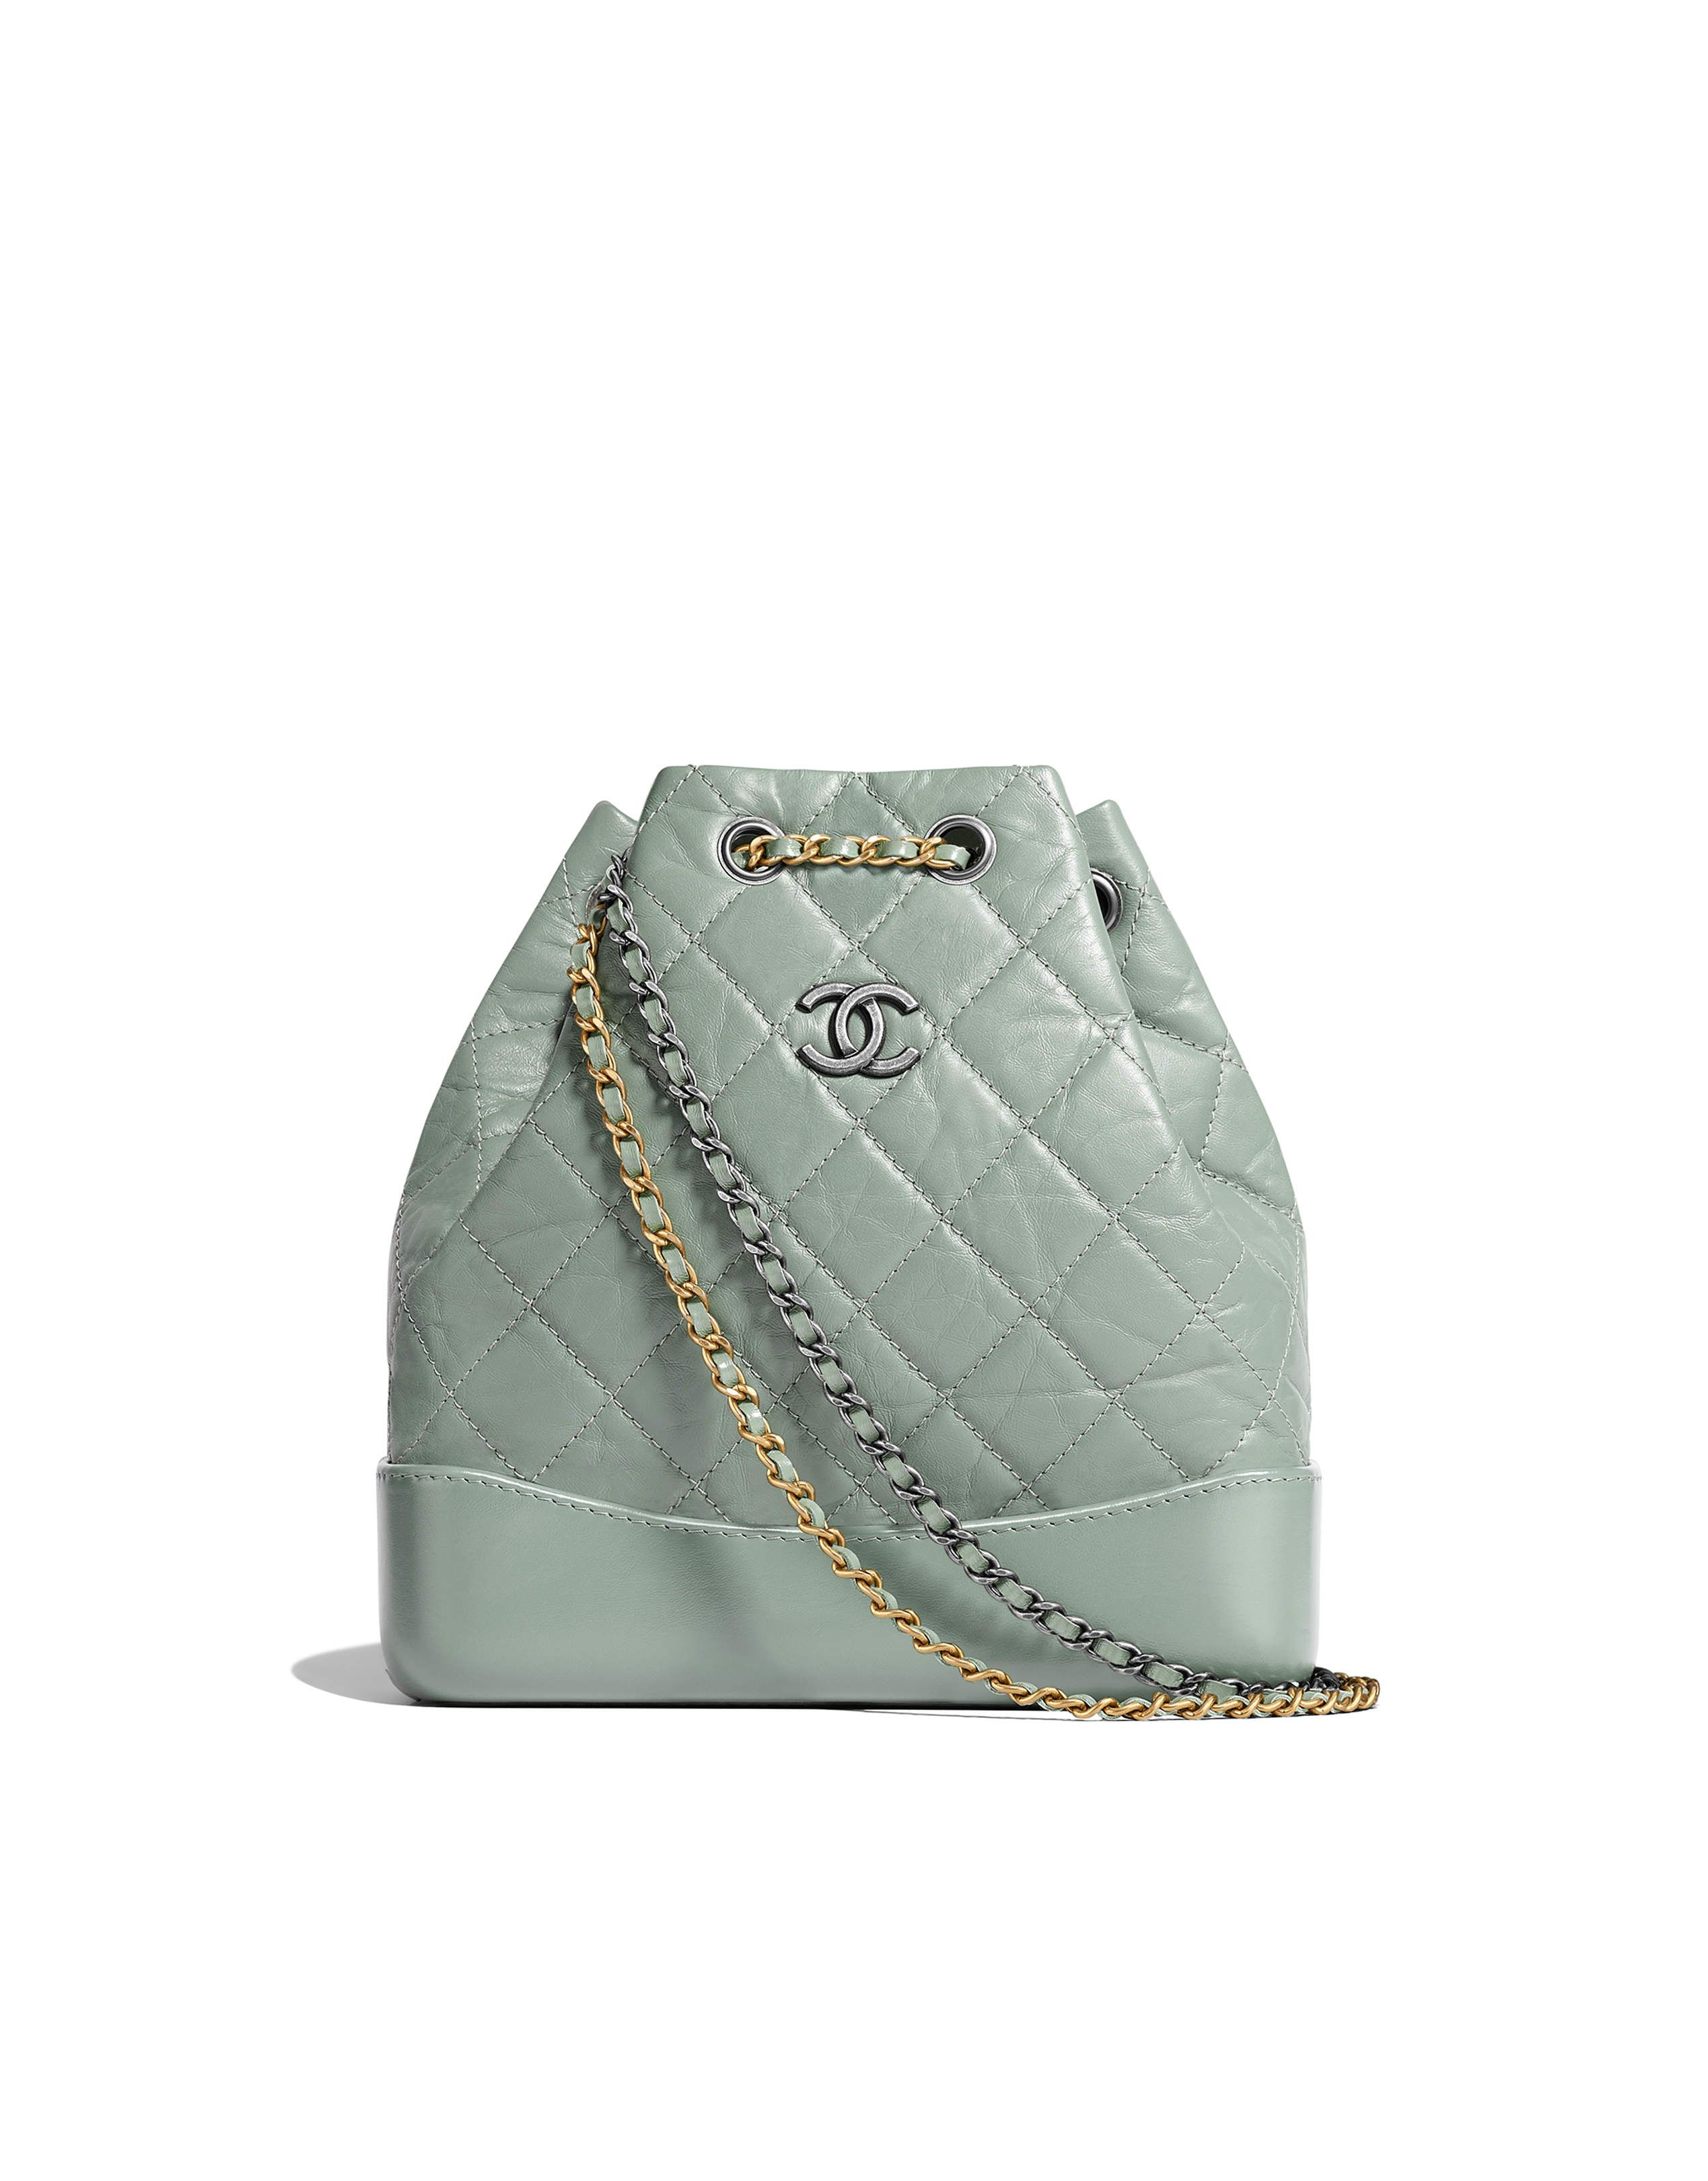 3c89d97e11c9 Chanel - Cruise 2017/2018 | Chanel's Gabrielle backpack | Chanel ...